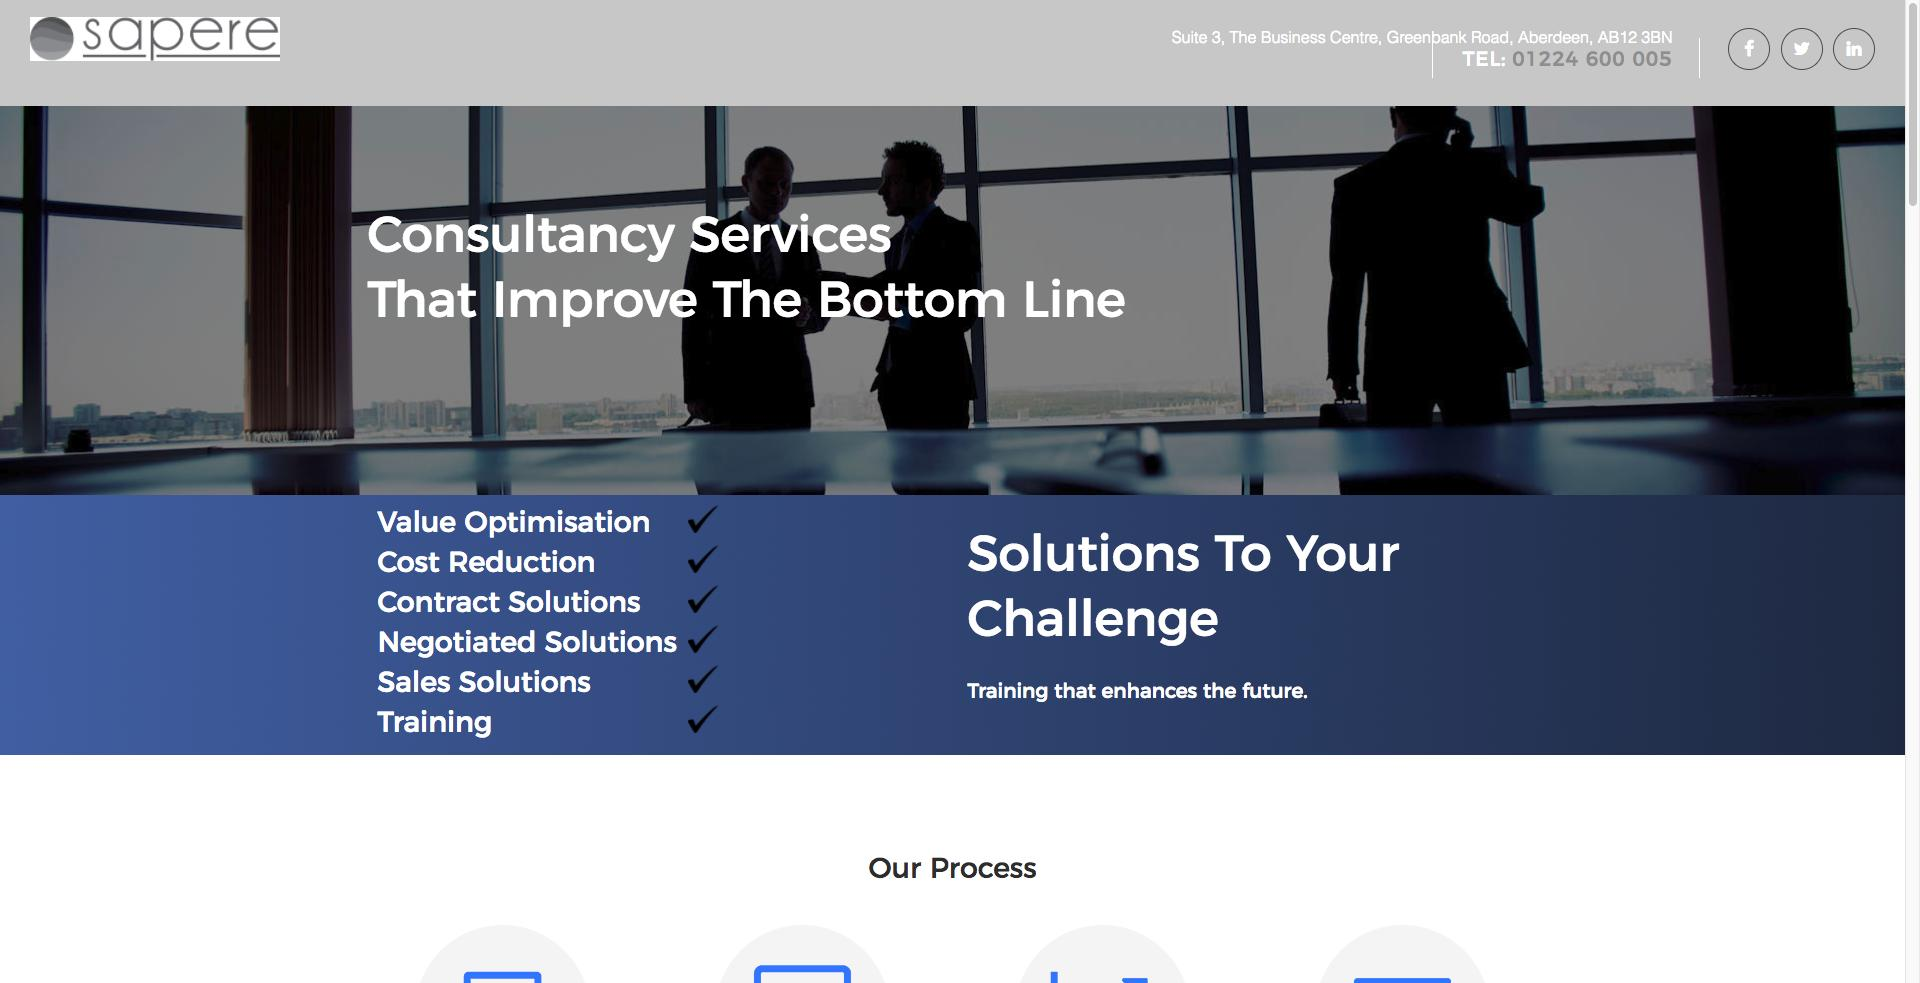 Sapere Consultancy Services